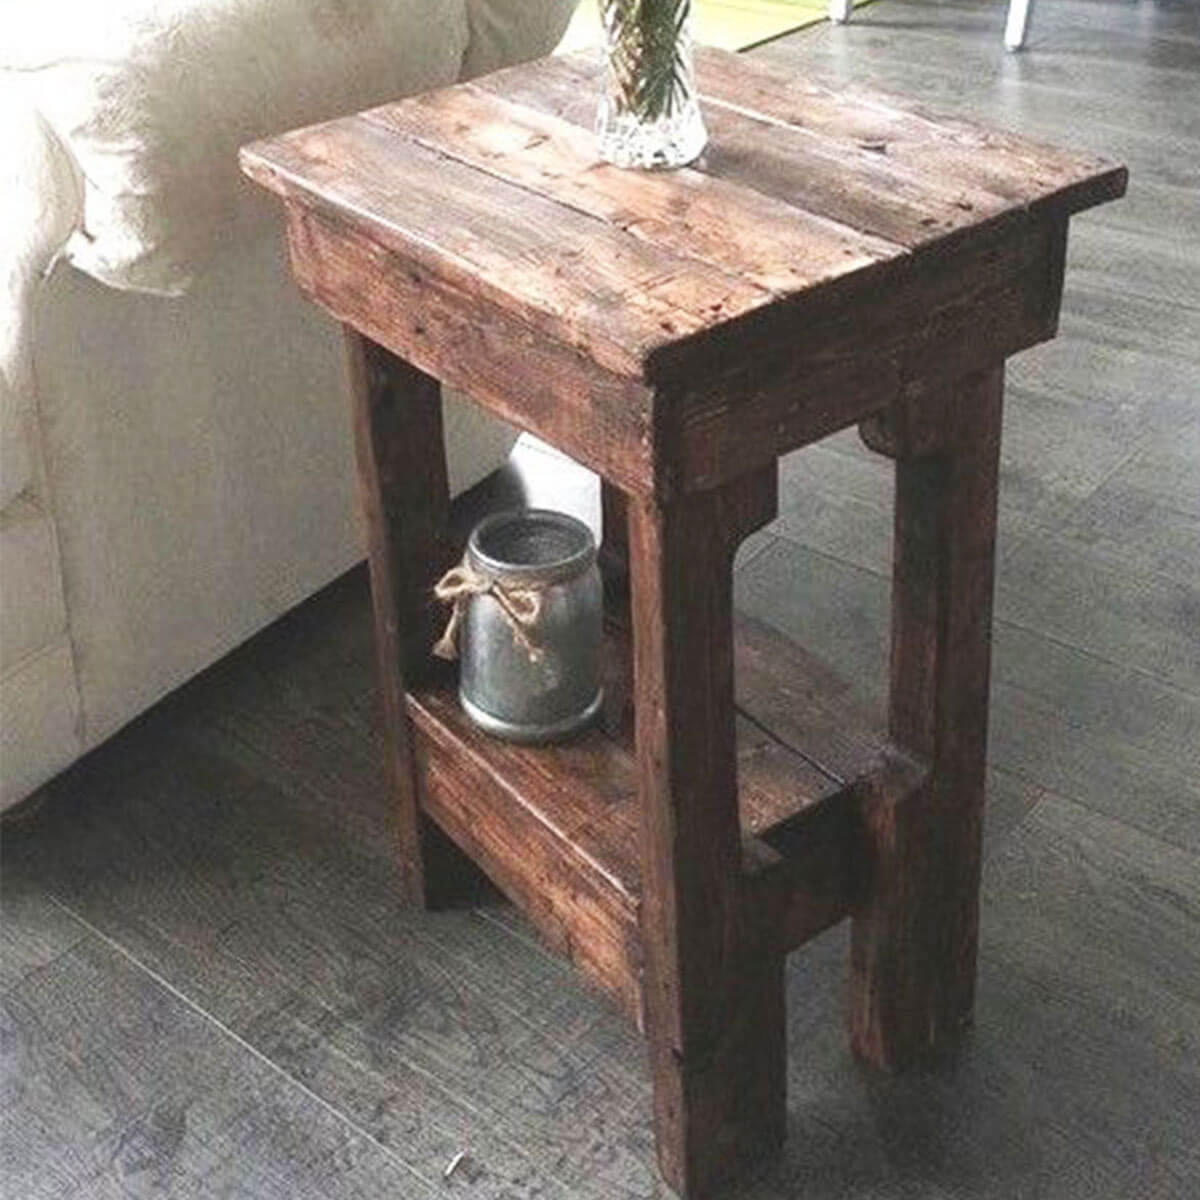 incredible diy end tables simple table ideas the family pallet affordable narrow console drawers red leather chairs and living room furniture universal gallery slim bedside mink